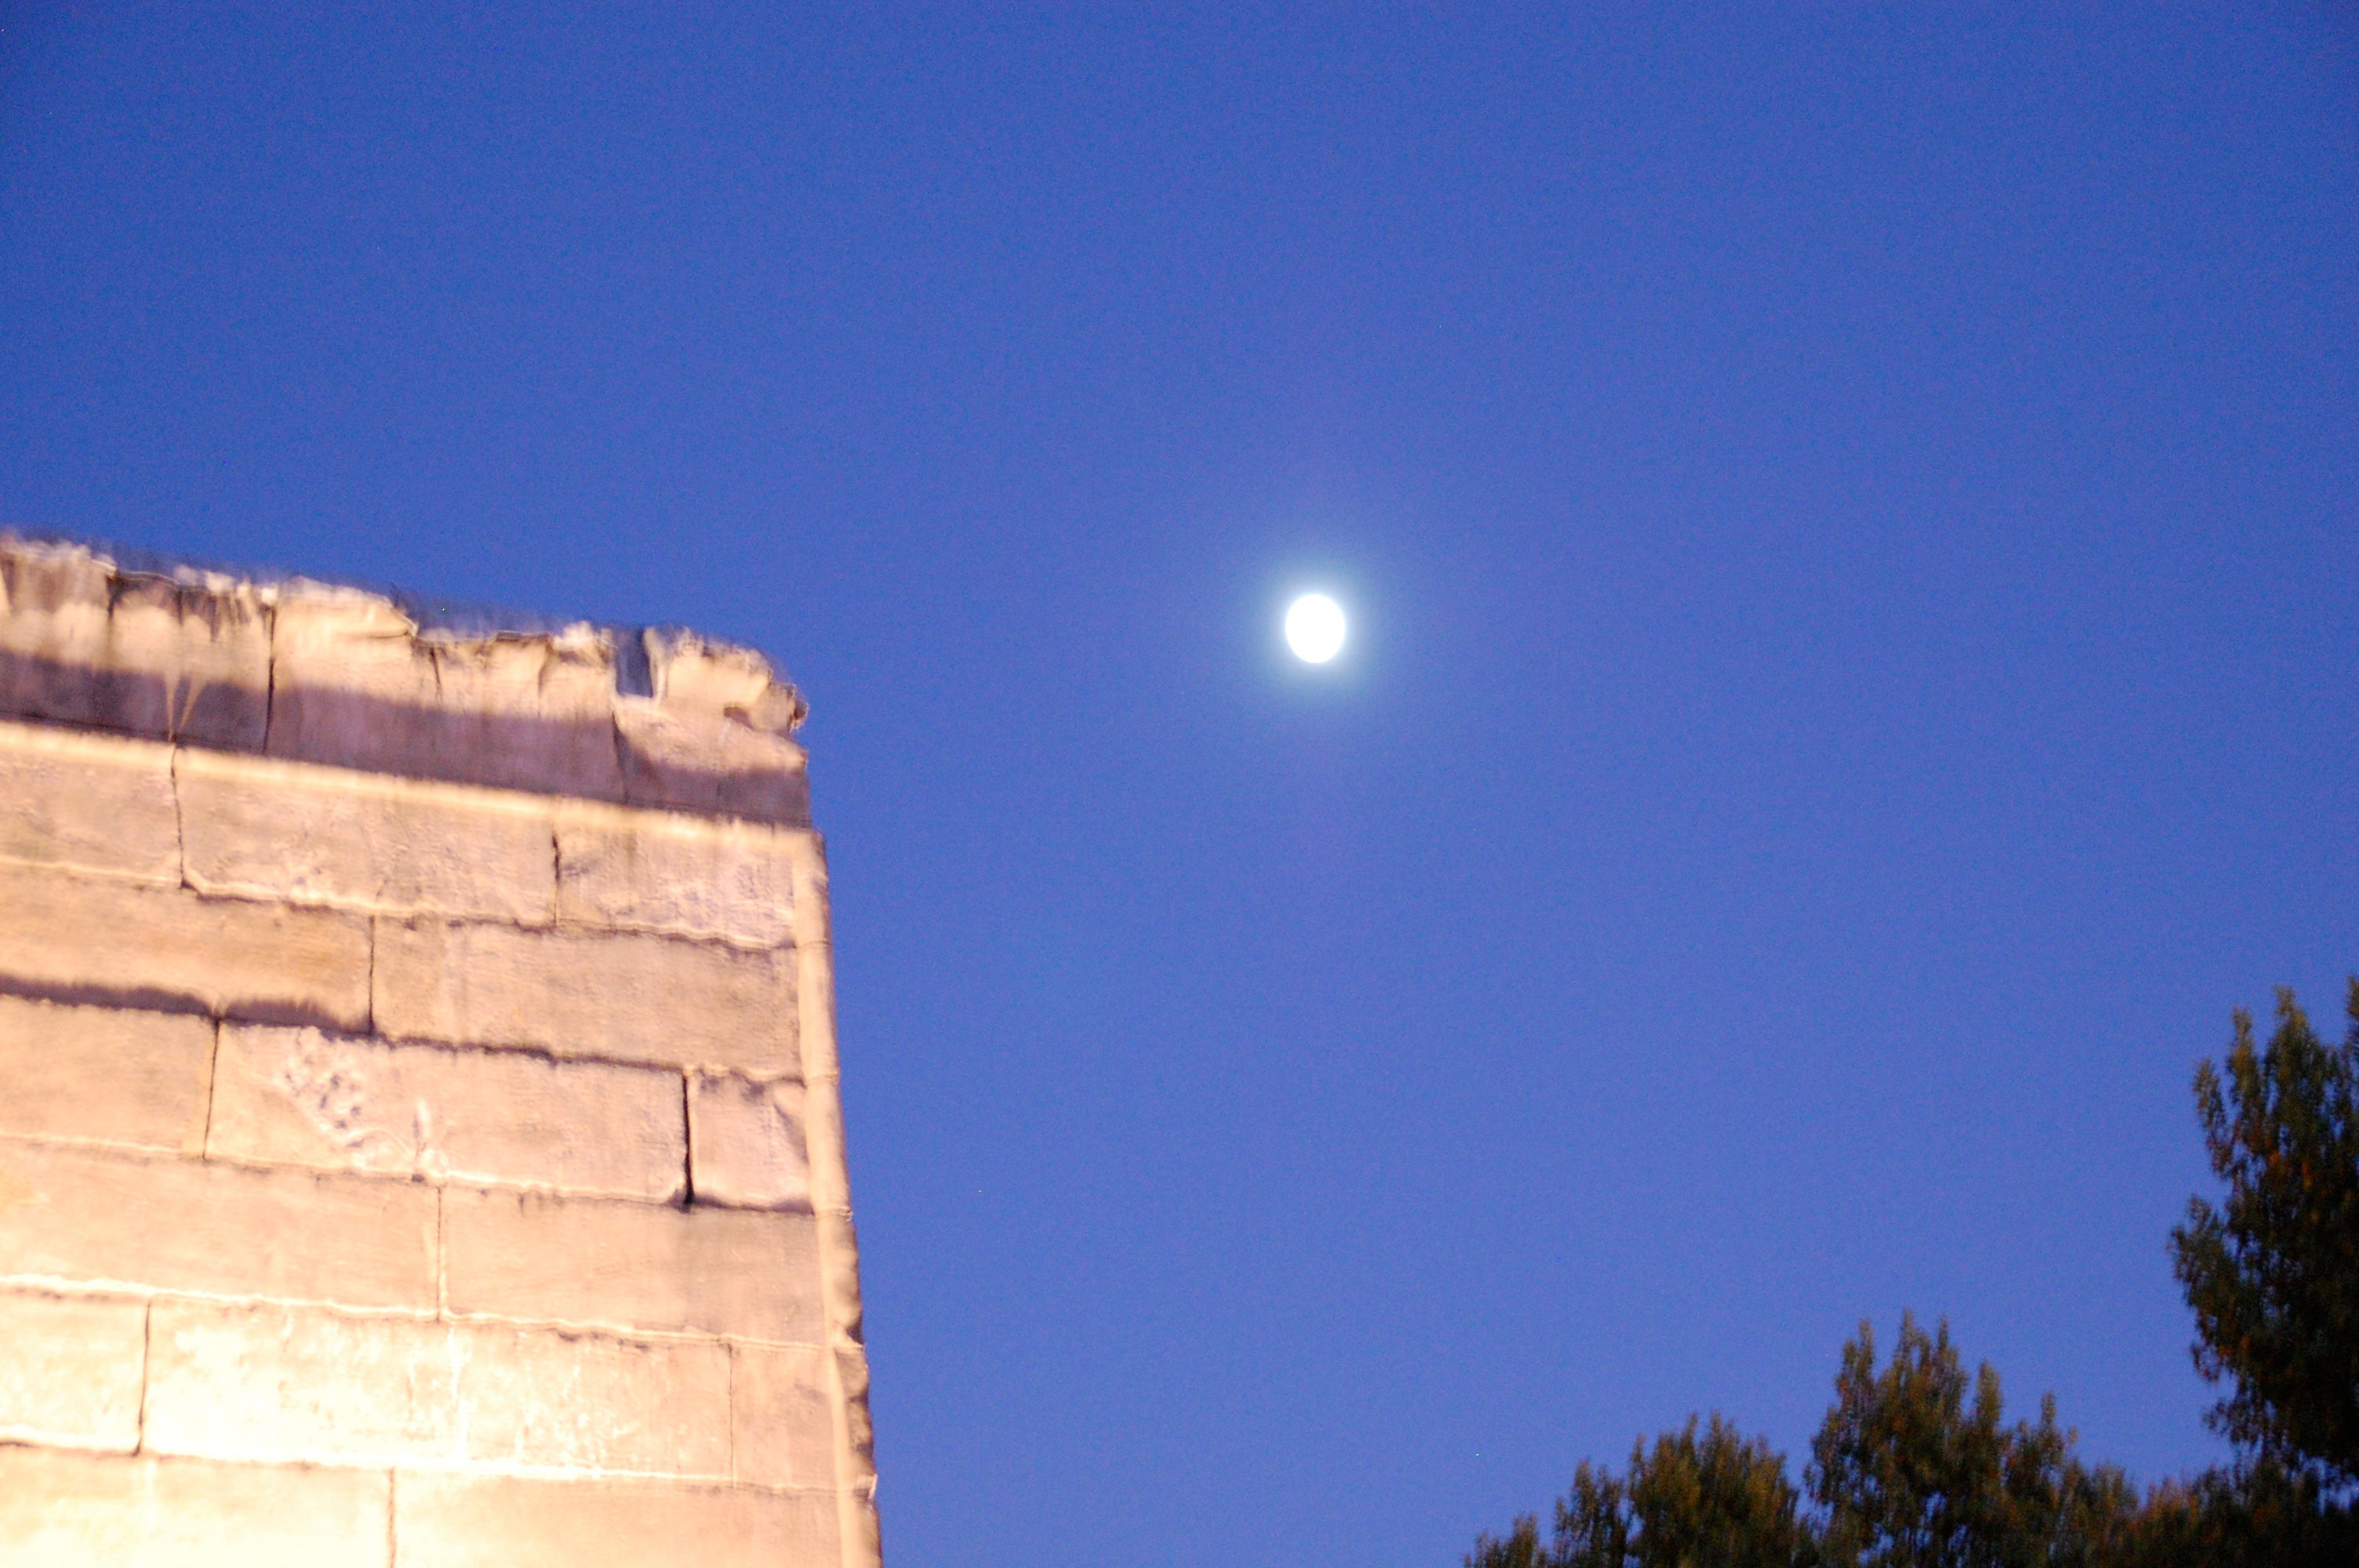 Astronomical Object in Temple of Debod